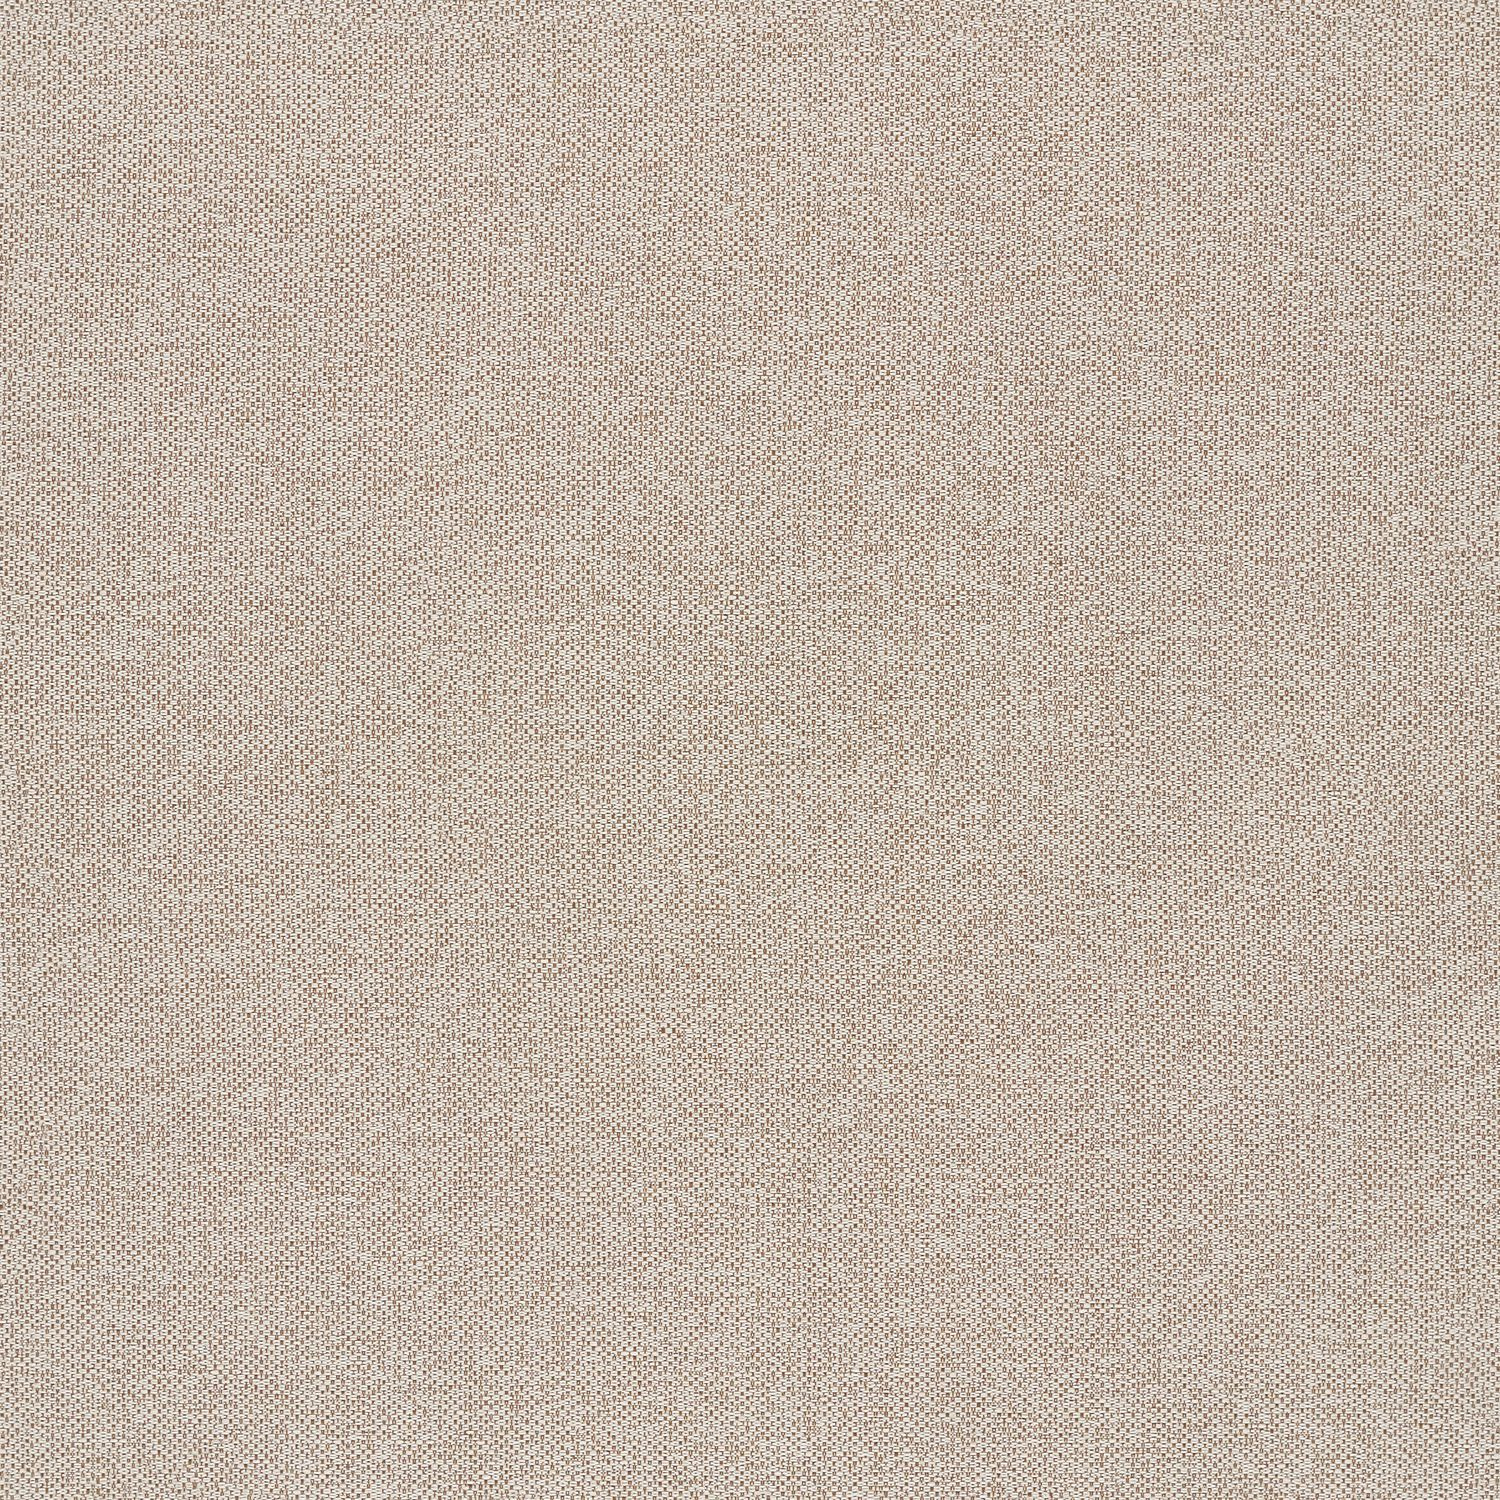 Fleck Forge - Brazen - 7016 - 03 - Half Yard Tileable Swatches